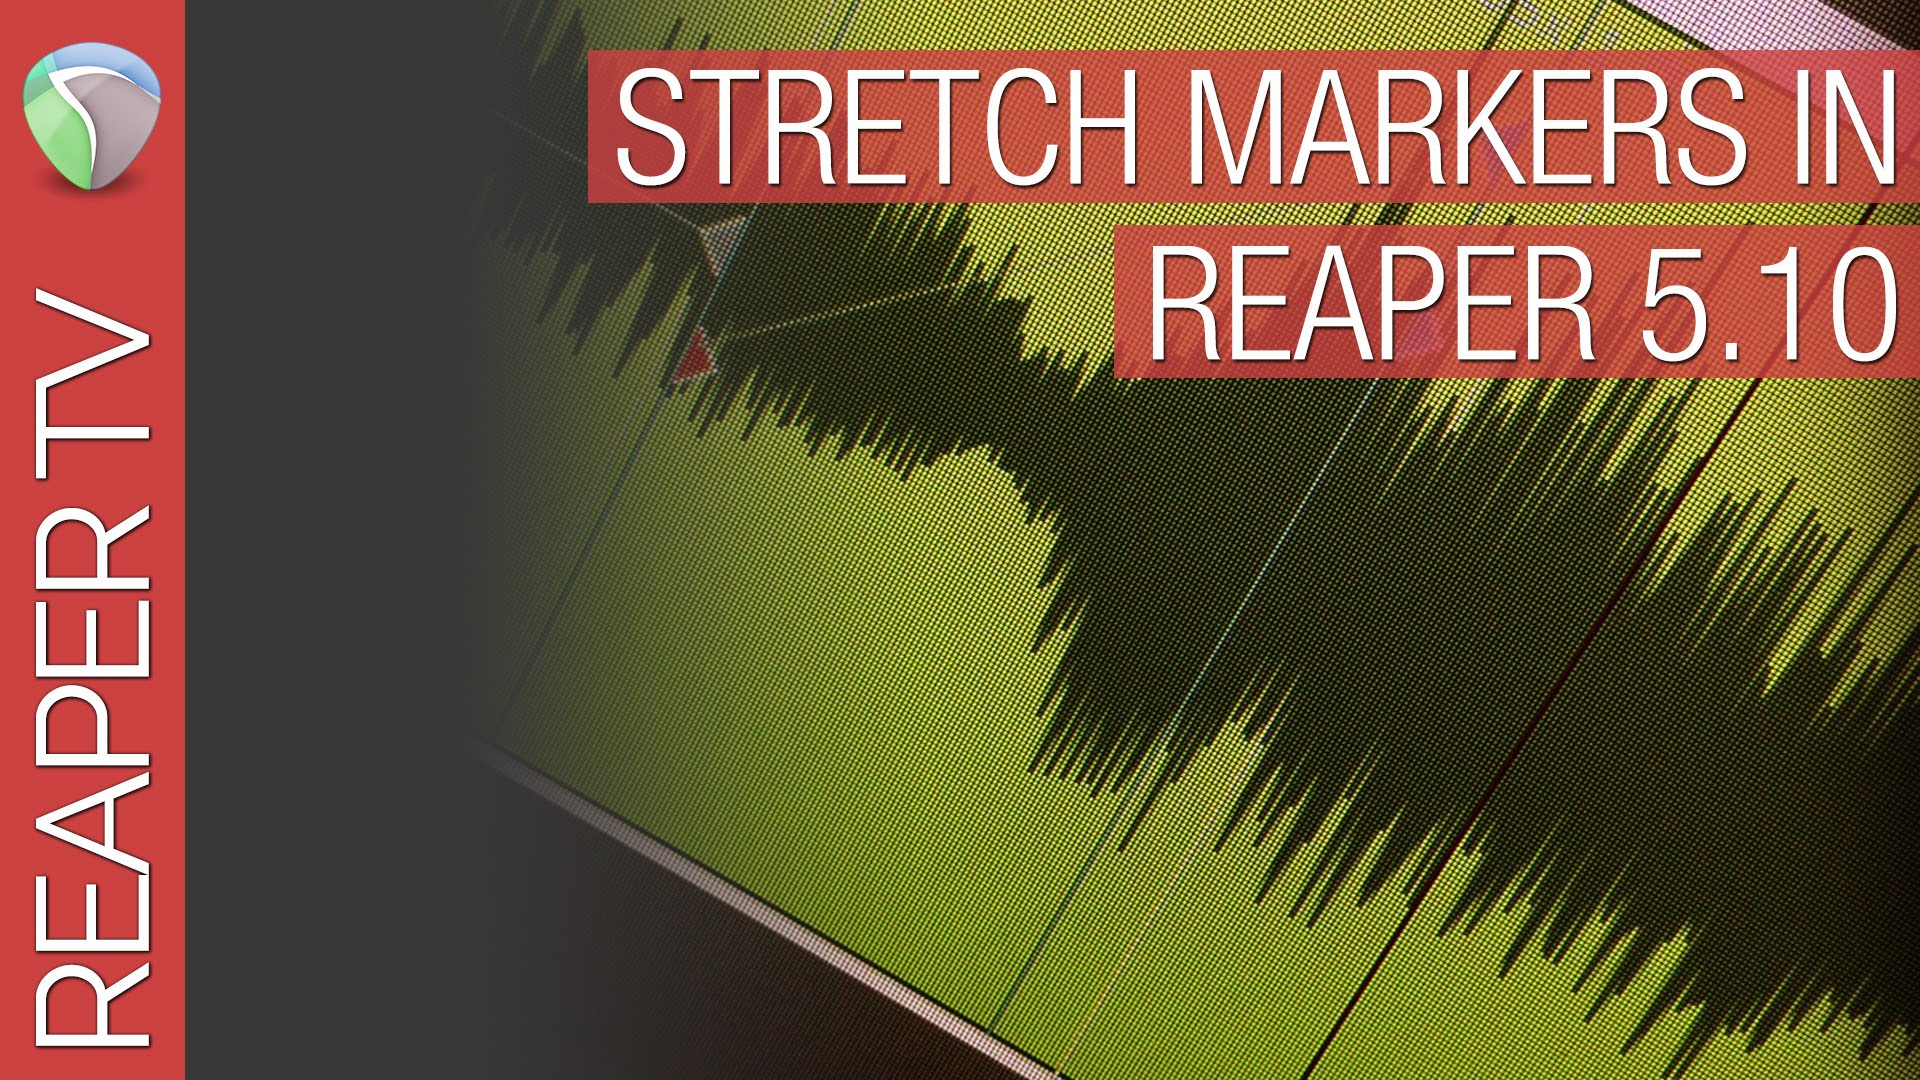 Reaper 5.1 – Supercharged Stretch Markers